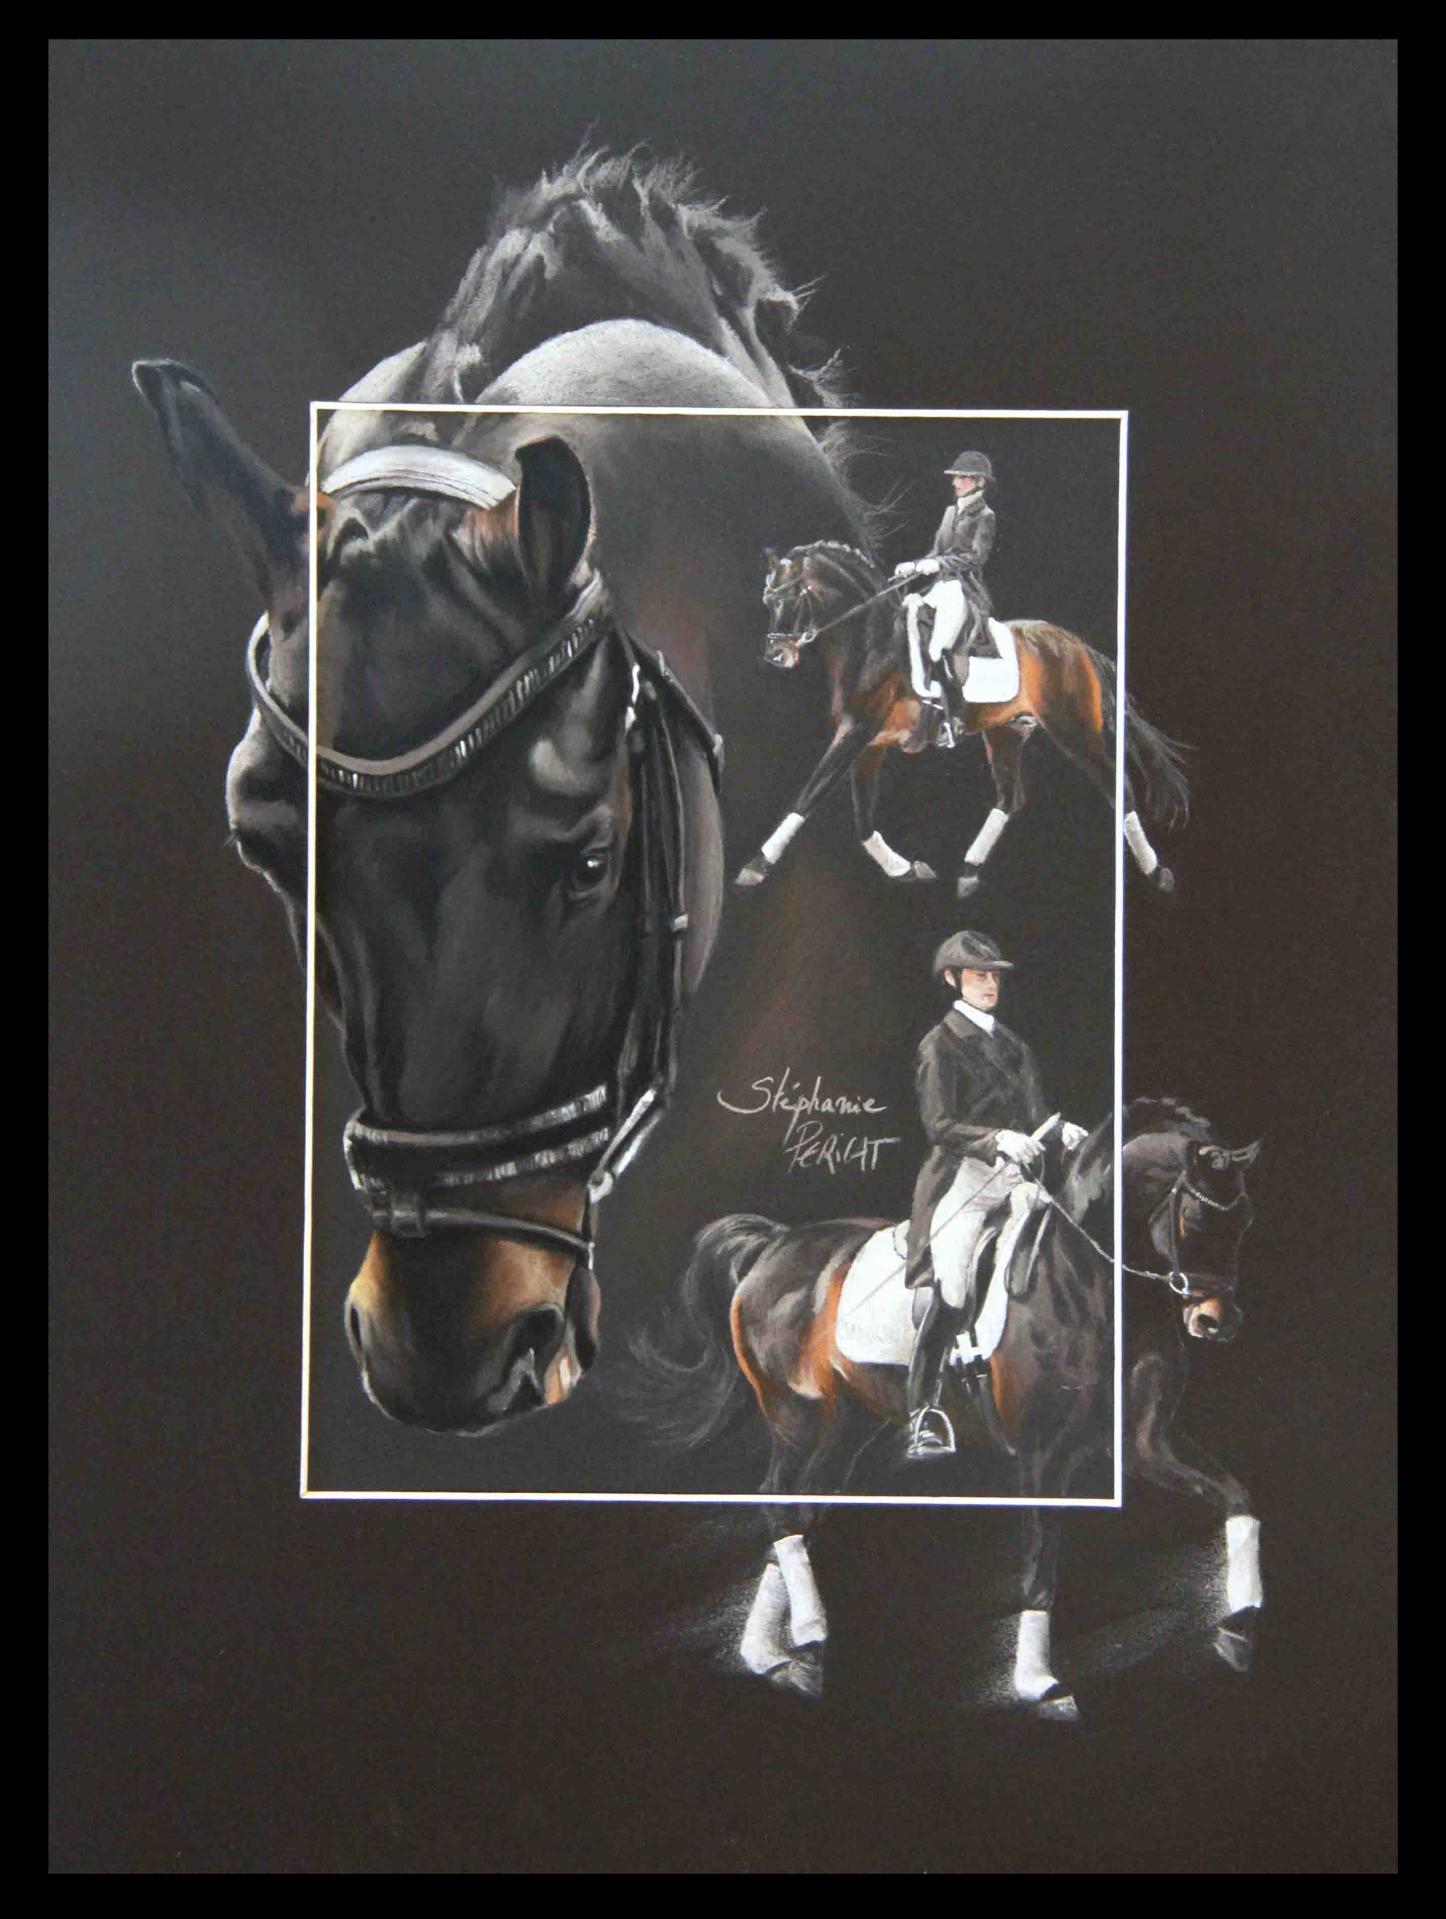 SANDREO ETALON AU DRESSAGE (stallion in dressage) - pastel sec (soft pastel) - 30x40cm - A V for sale